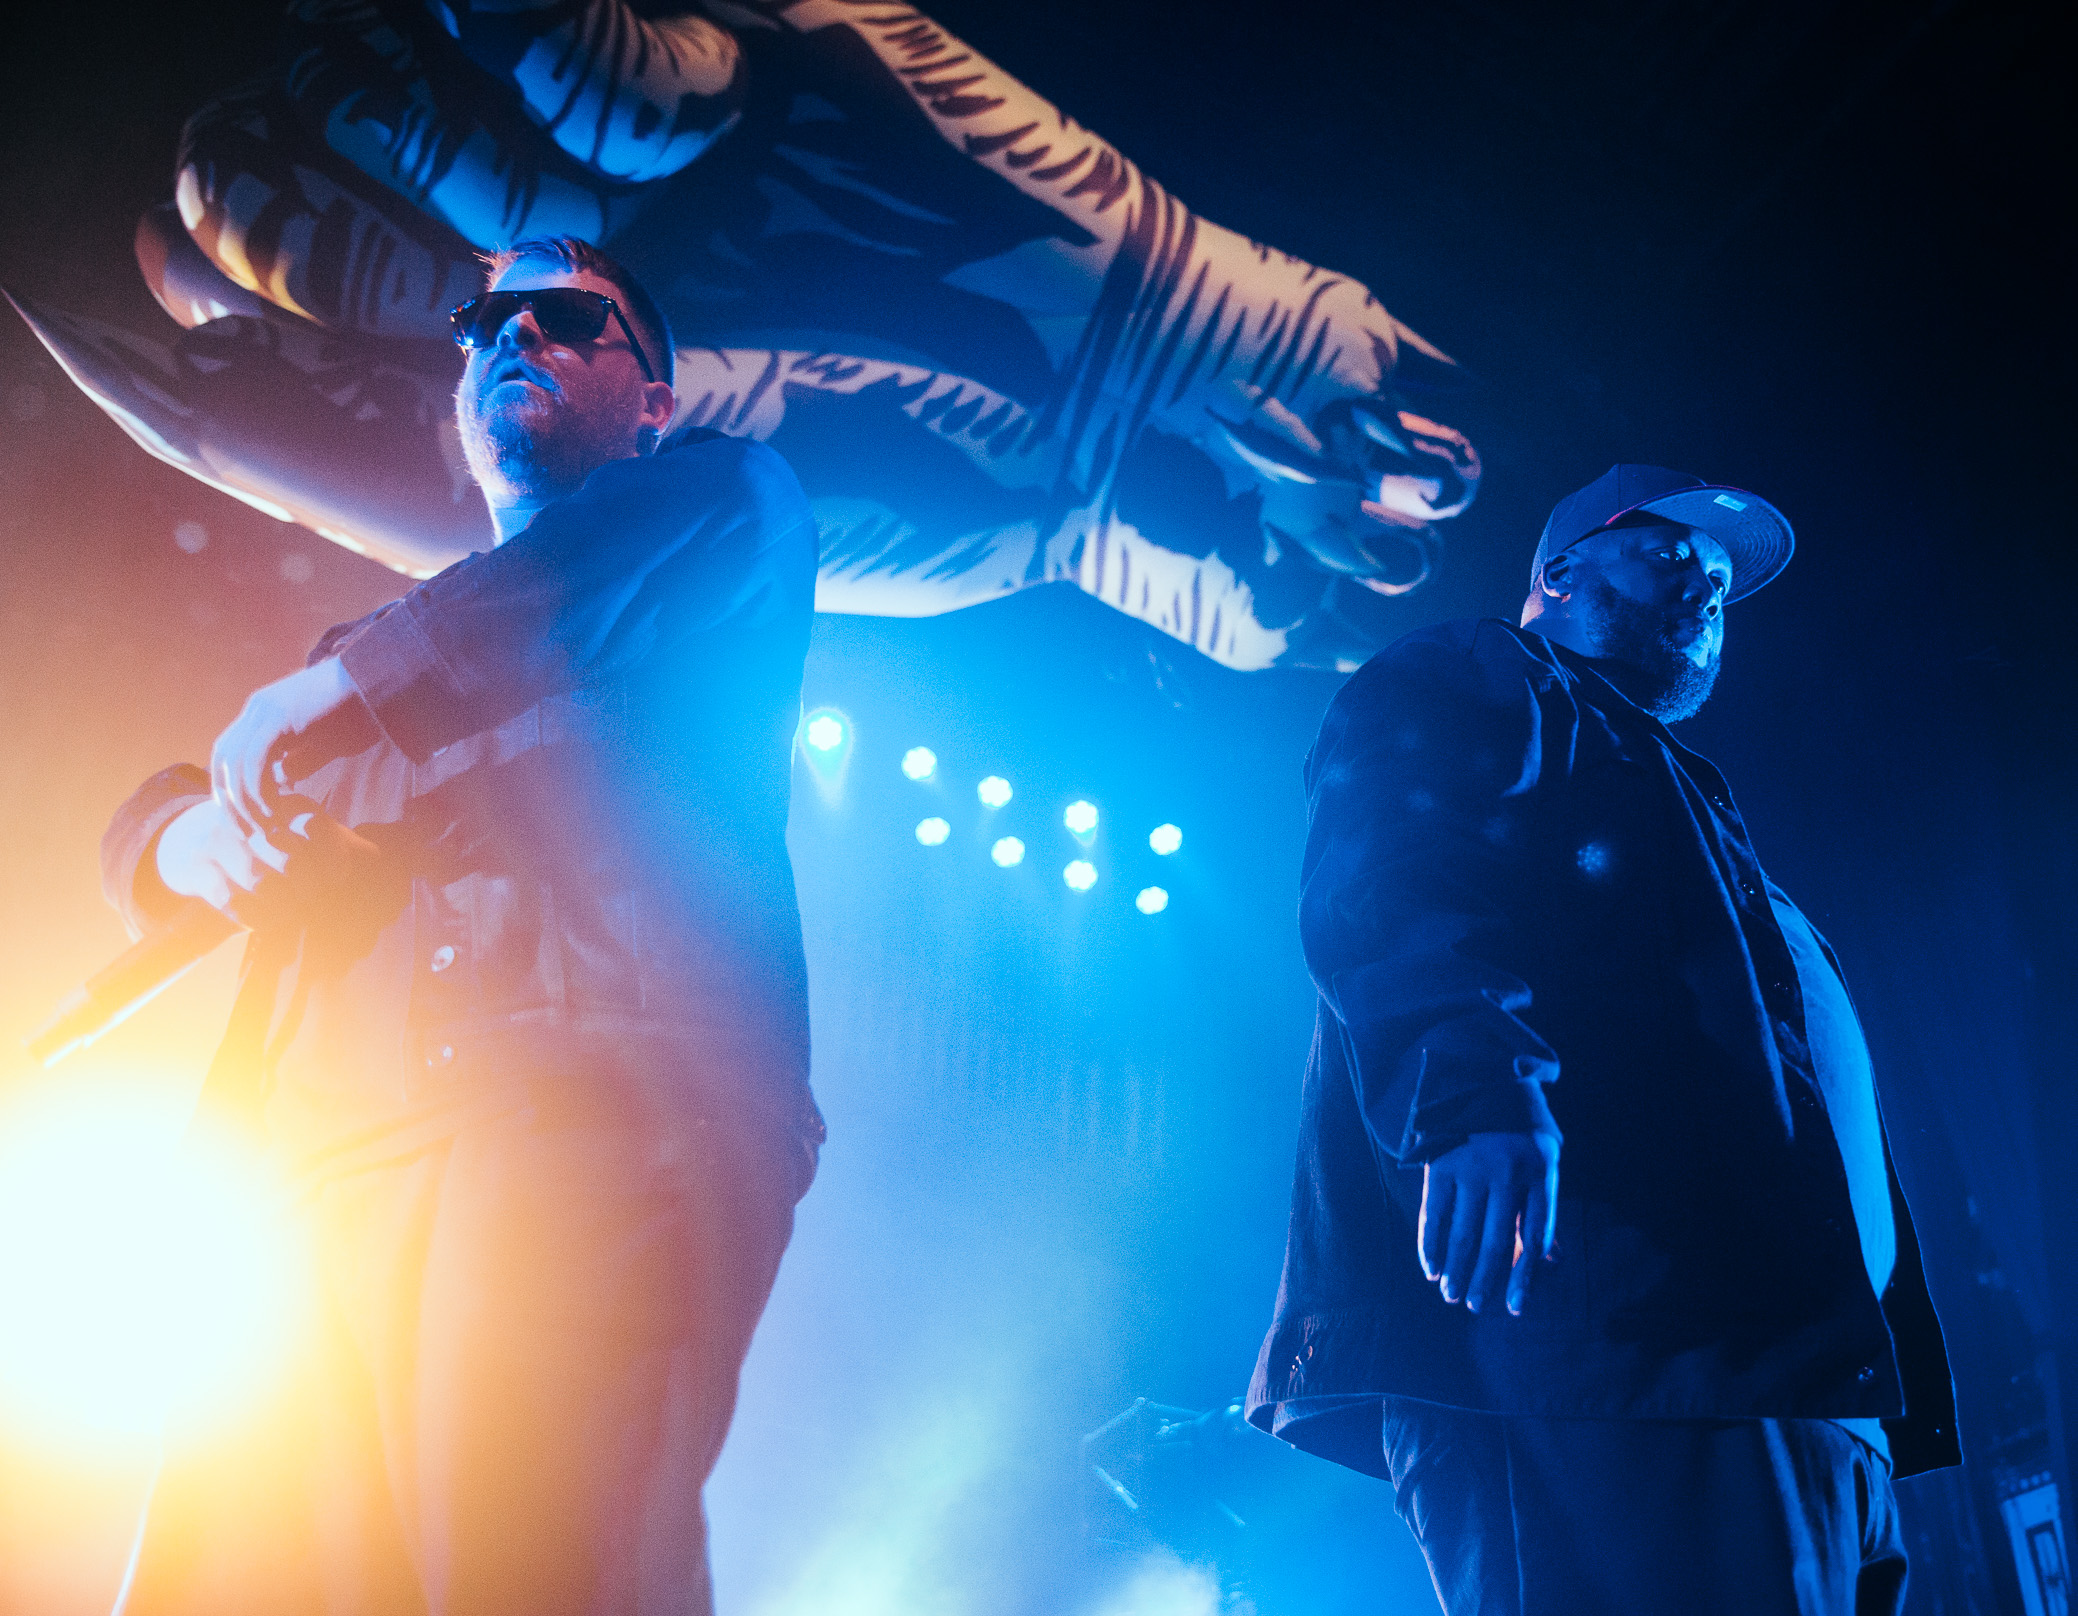 Run The Jewels performs at The Tabernacle in Atlanta, Georgia on January 21st, 2017.   (Photo by David A. Smith/DSmithScenes)